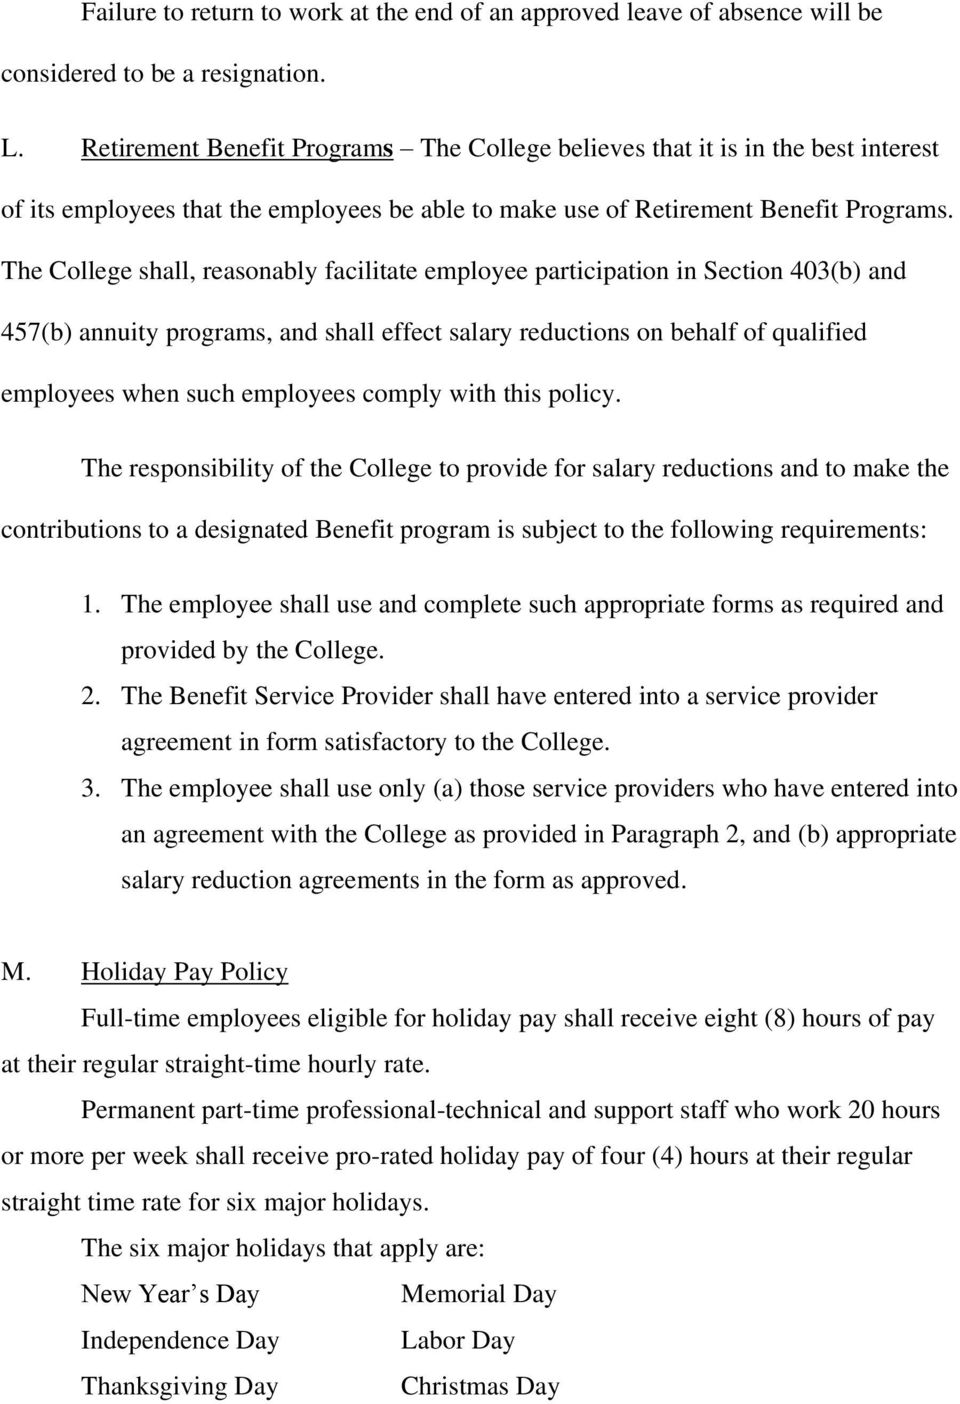 The College shall, reasonably facilitate employee participation in Section 403(b) and 457(b) annuity programs, and shall effect salary reductions on behalf of qualified employees when such employees